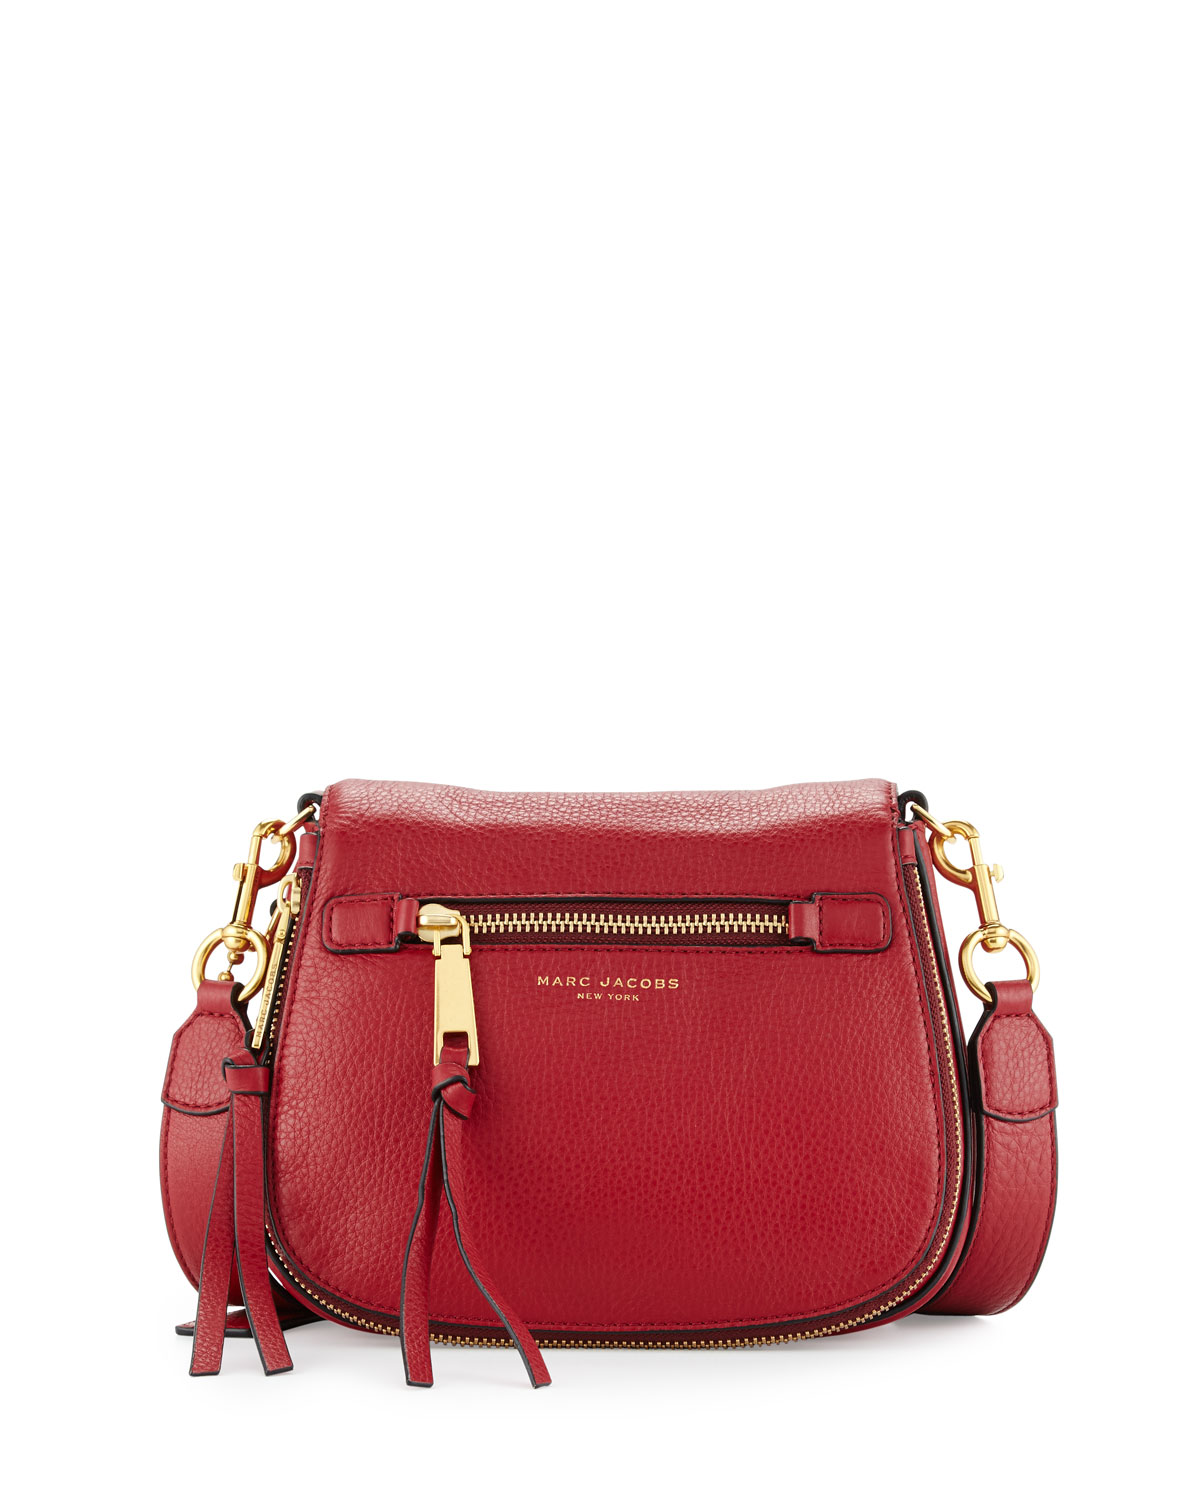 124a9b6a616b28 Marc Jacobs Recruit Small Saddle Bag, Ruby Rose | Neiman Marcus